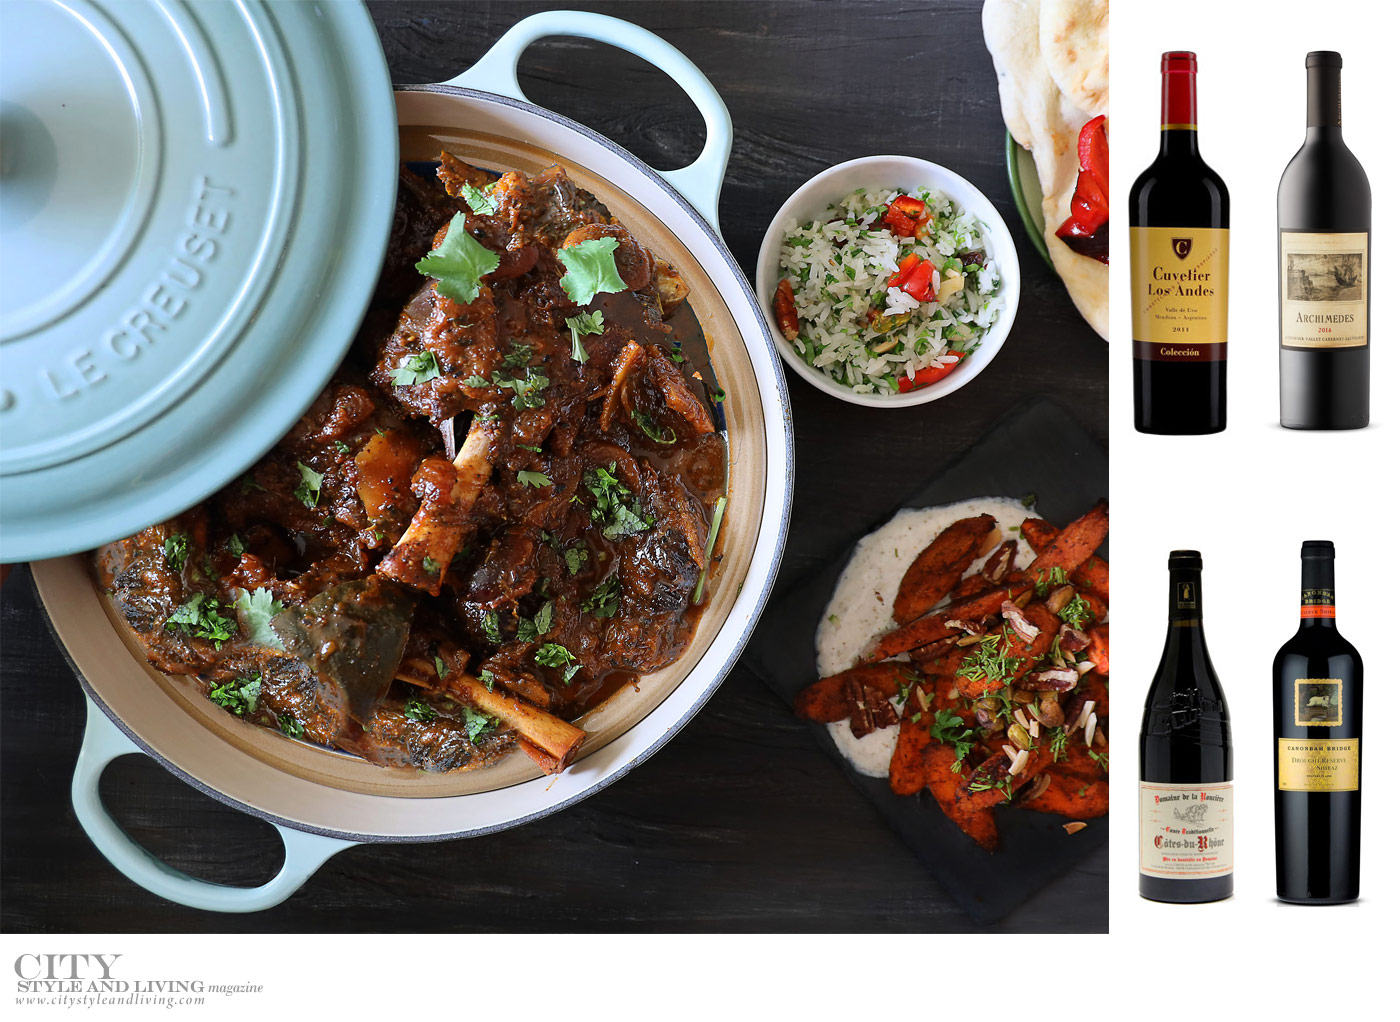 City Style and Living Magazine Fall 2019 Wines and spirits what to pair with lamb stew